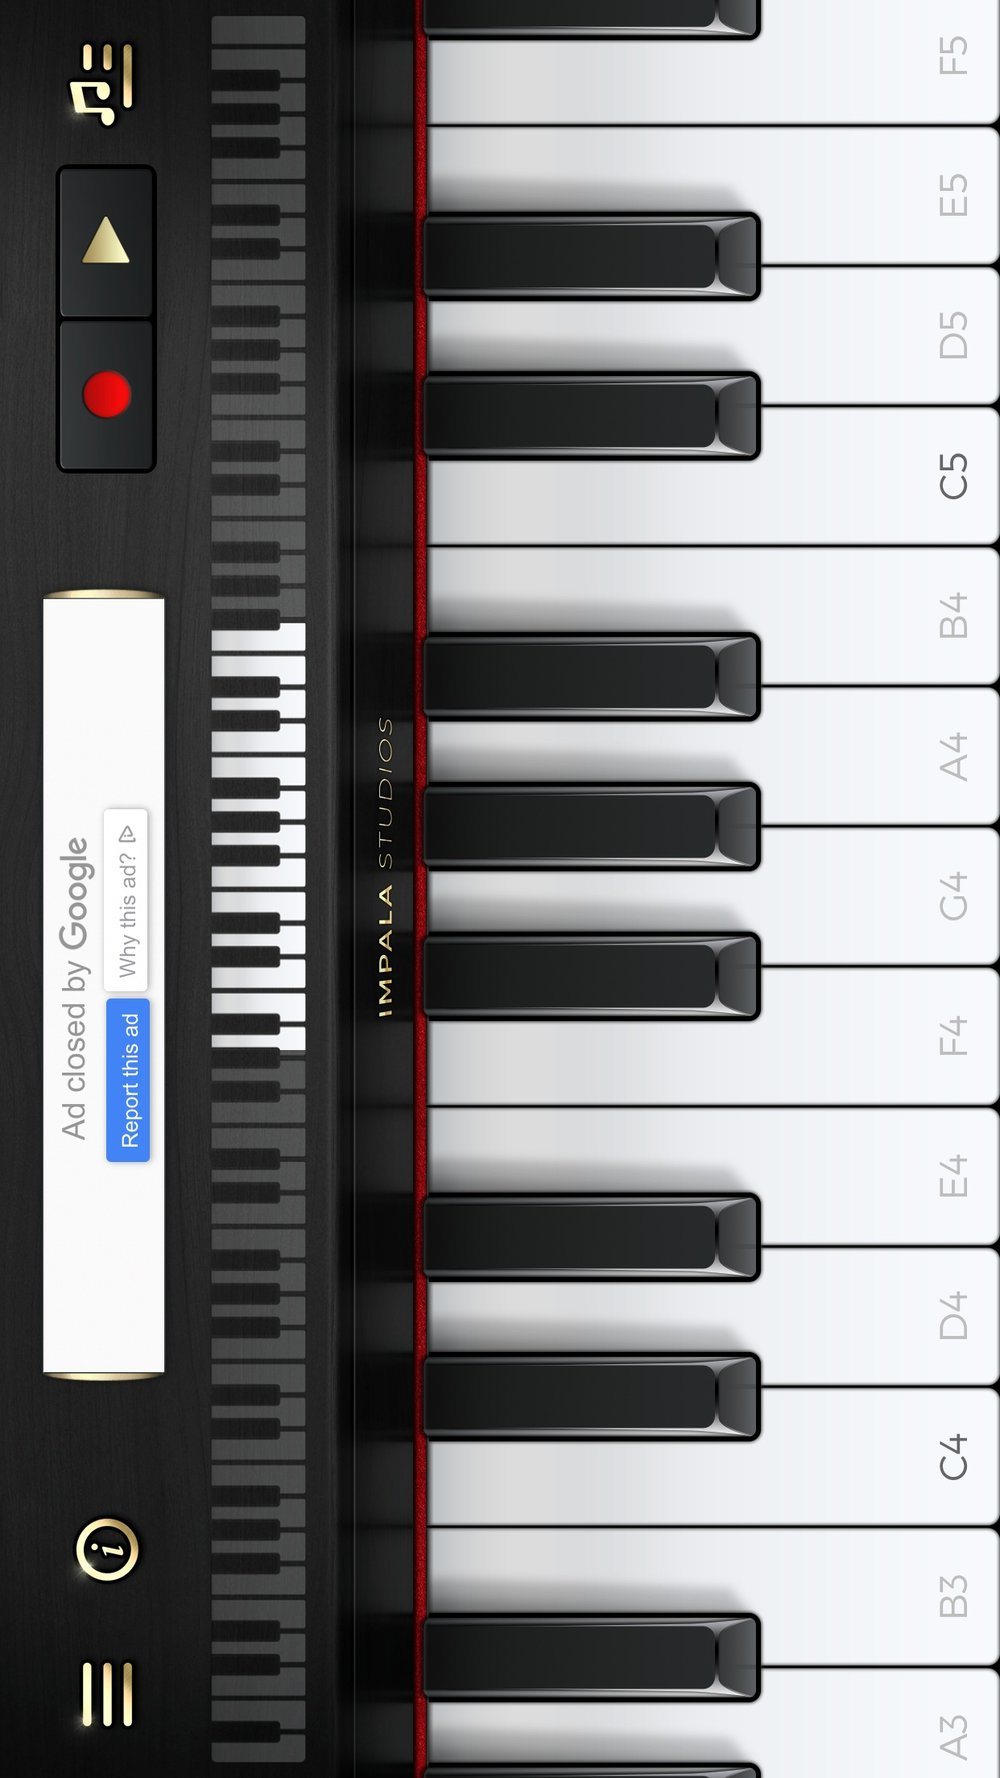 Screenshot of the slidable keyboard in The Piano app.